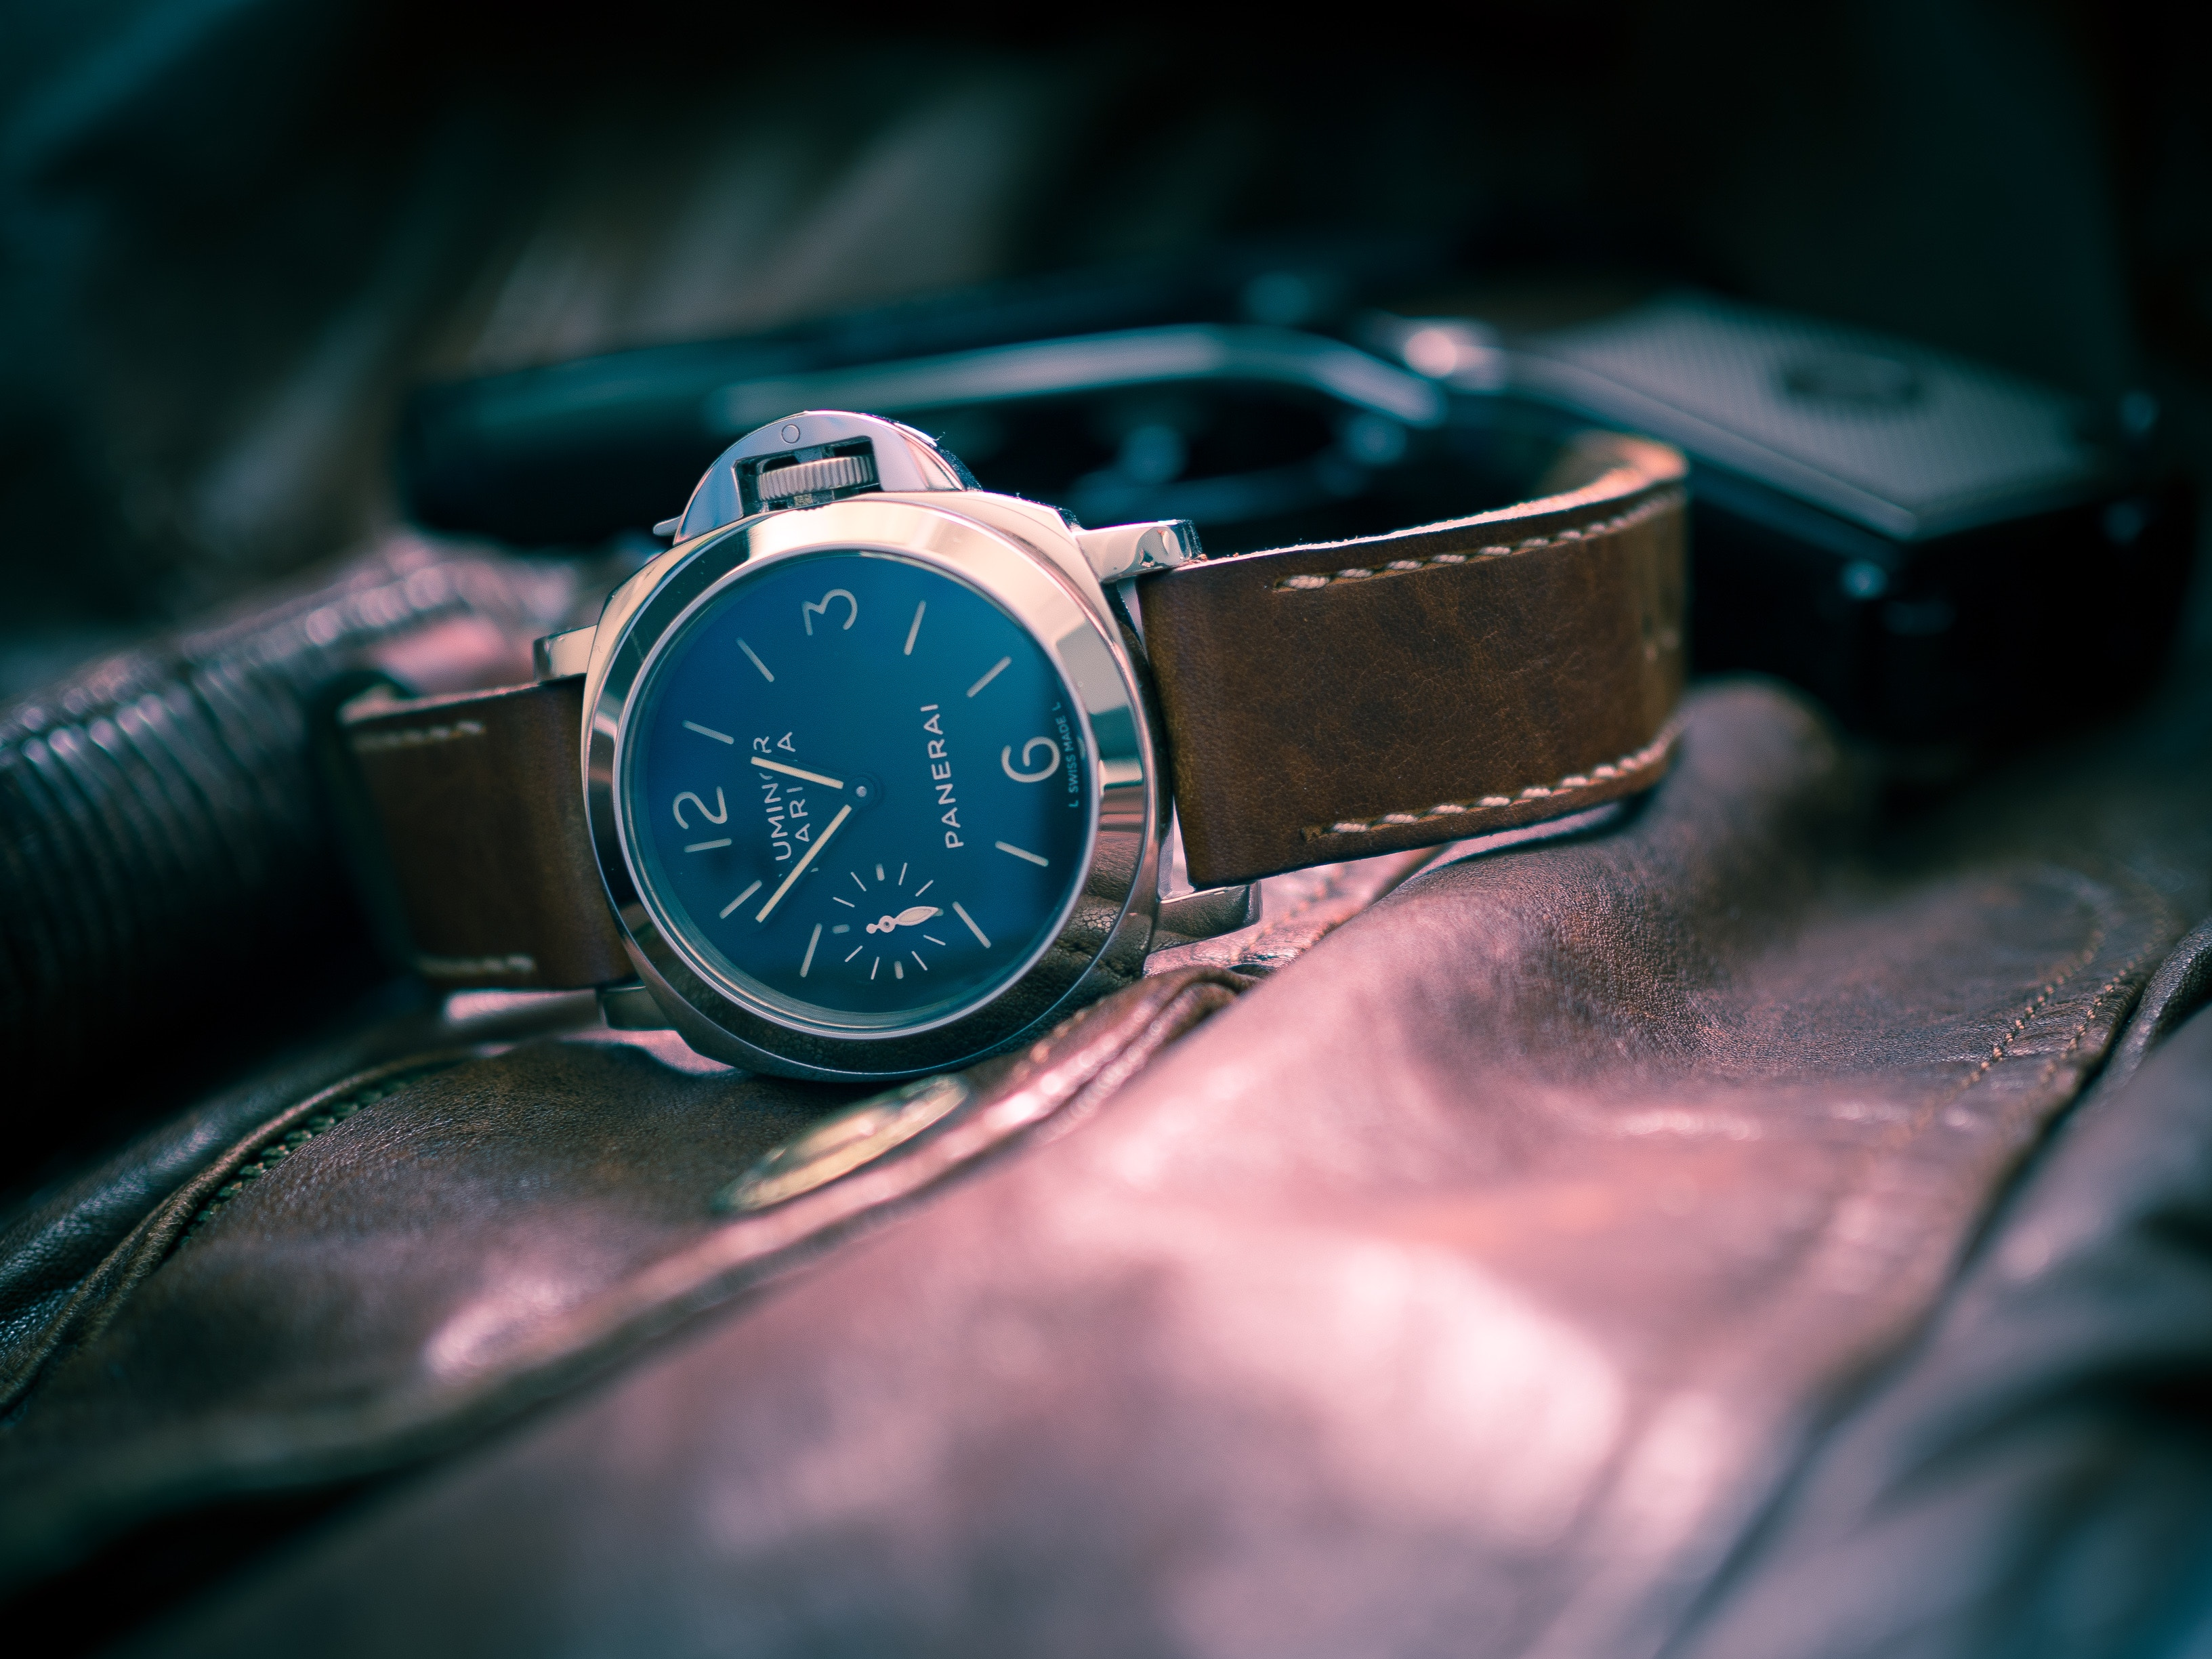 The improbable survival of the luxury watch business